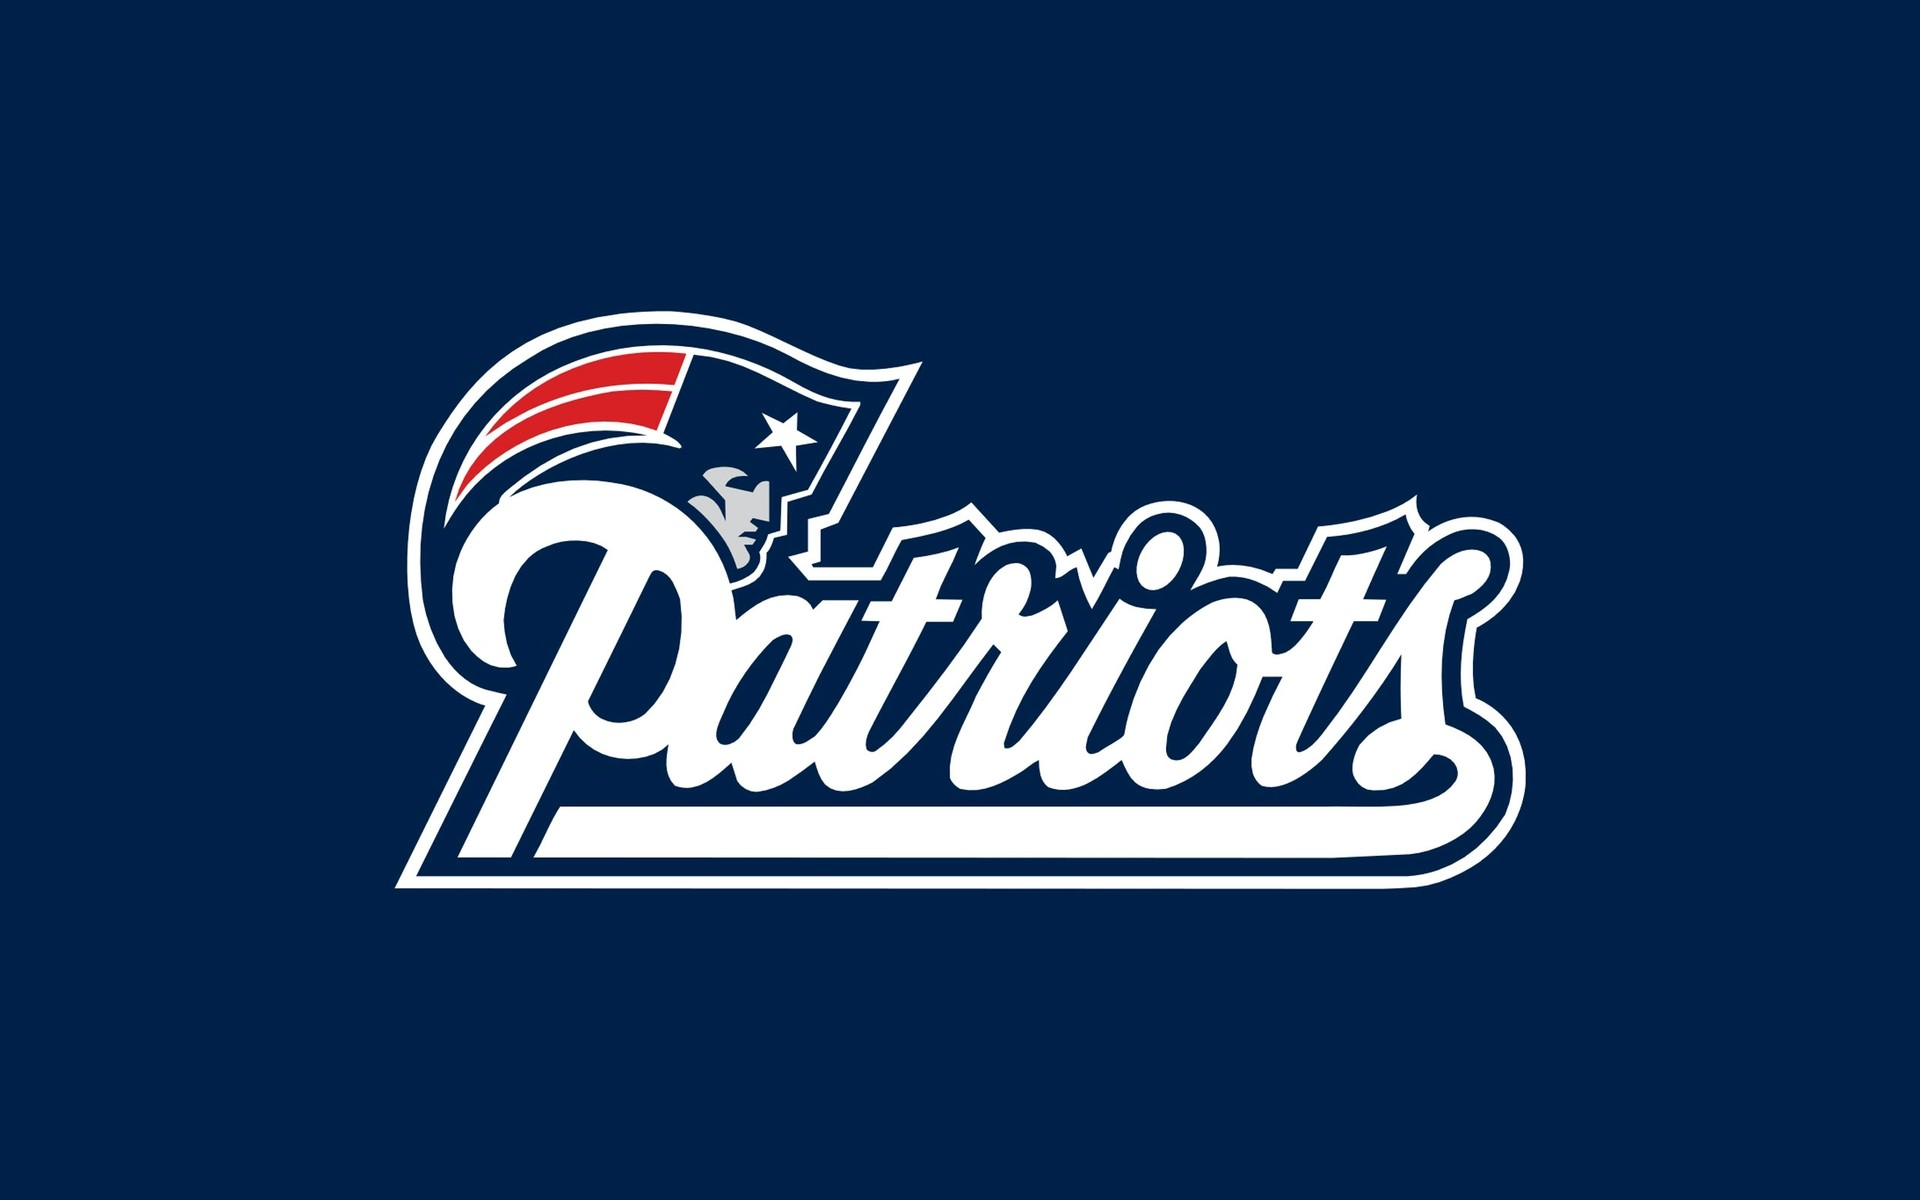 patriots wallpaper ·① download free amazing backgrounds for desktop